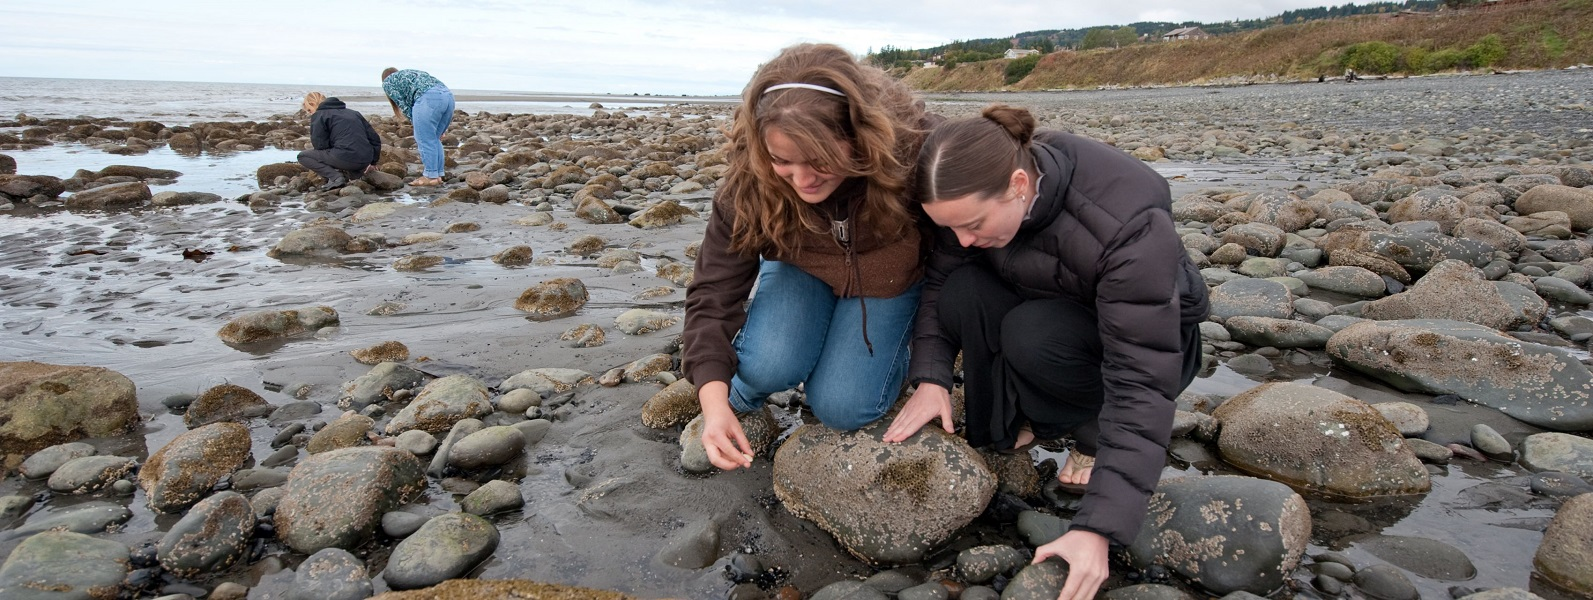 On Bishops Beach in Homer, two female KBC students are examining a rock in the tidal zone with two other students in the distance.